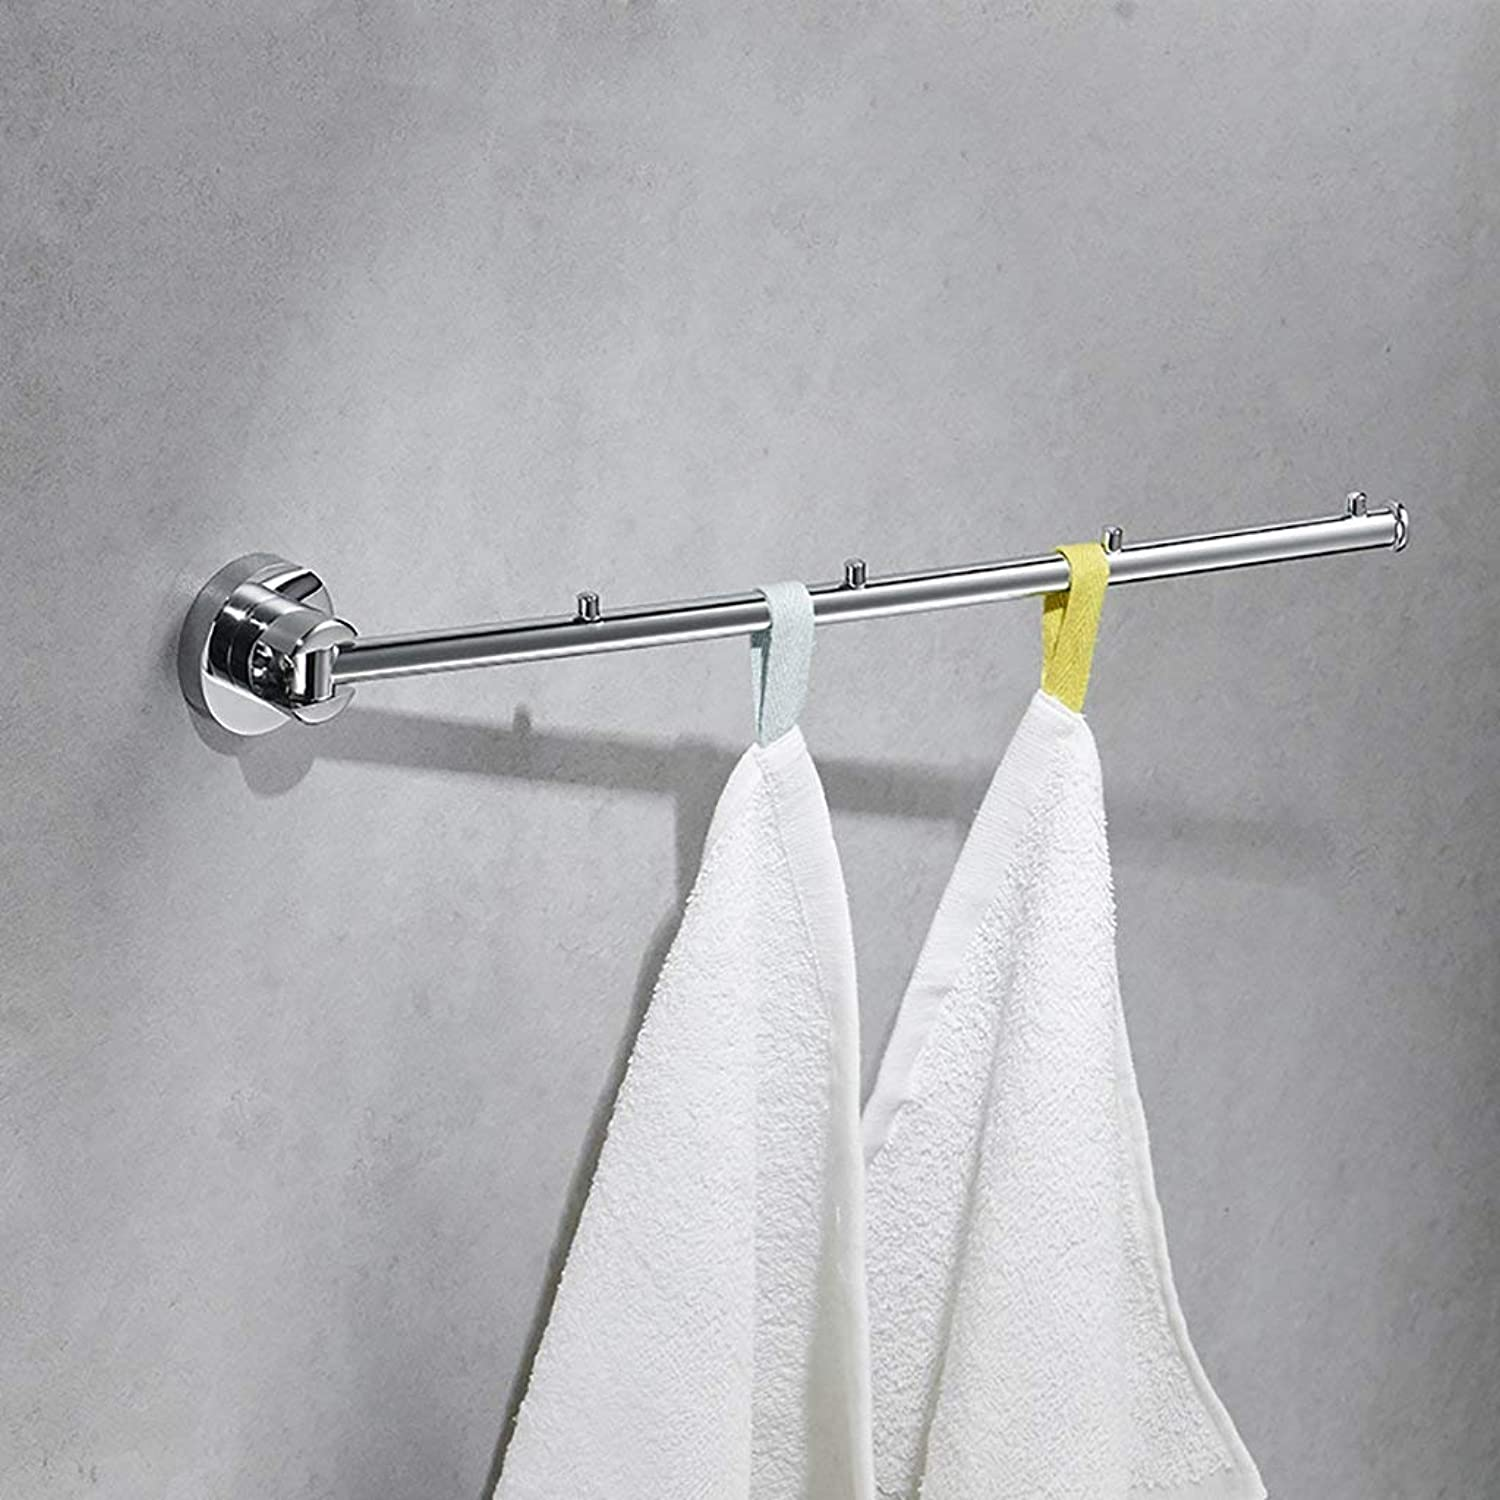 Towel Rack Towel Rack Wall Mount Wall-Mounted Copper redation Towel Rod Single Pole Towel Rack Door Kitchen Bathroom Towel Shelf